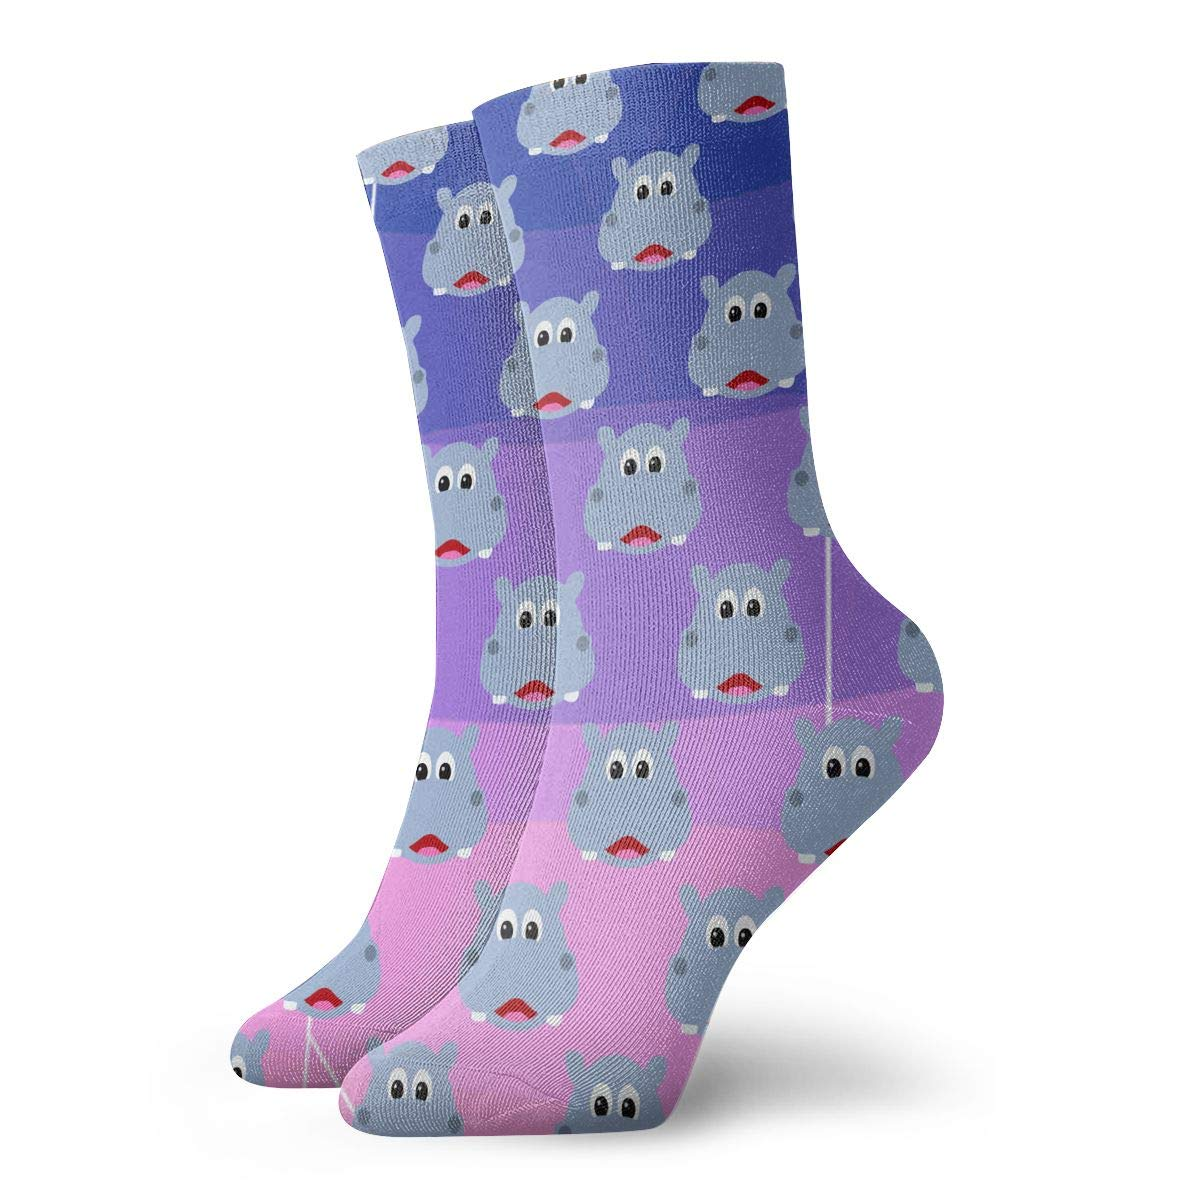 Cute Hippo Face Unisex Funny Casual Crew Socks Athletic Socks For Boys Girls Kids Teenagers